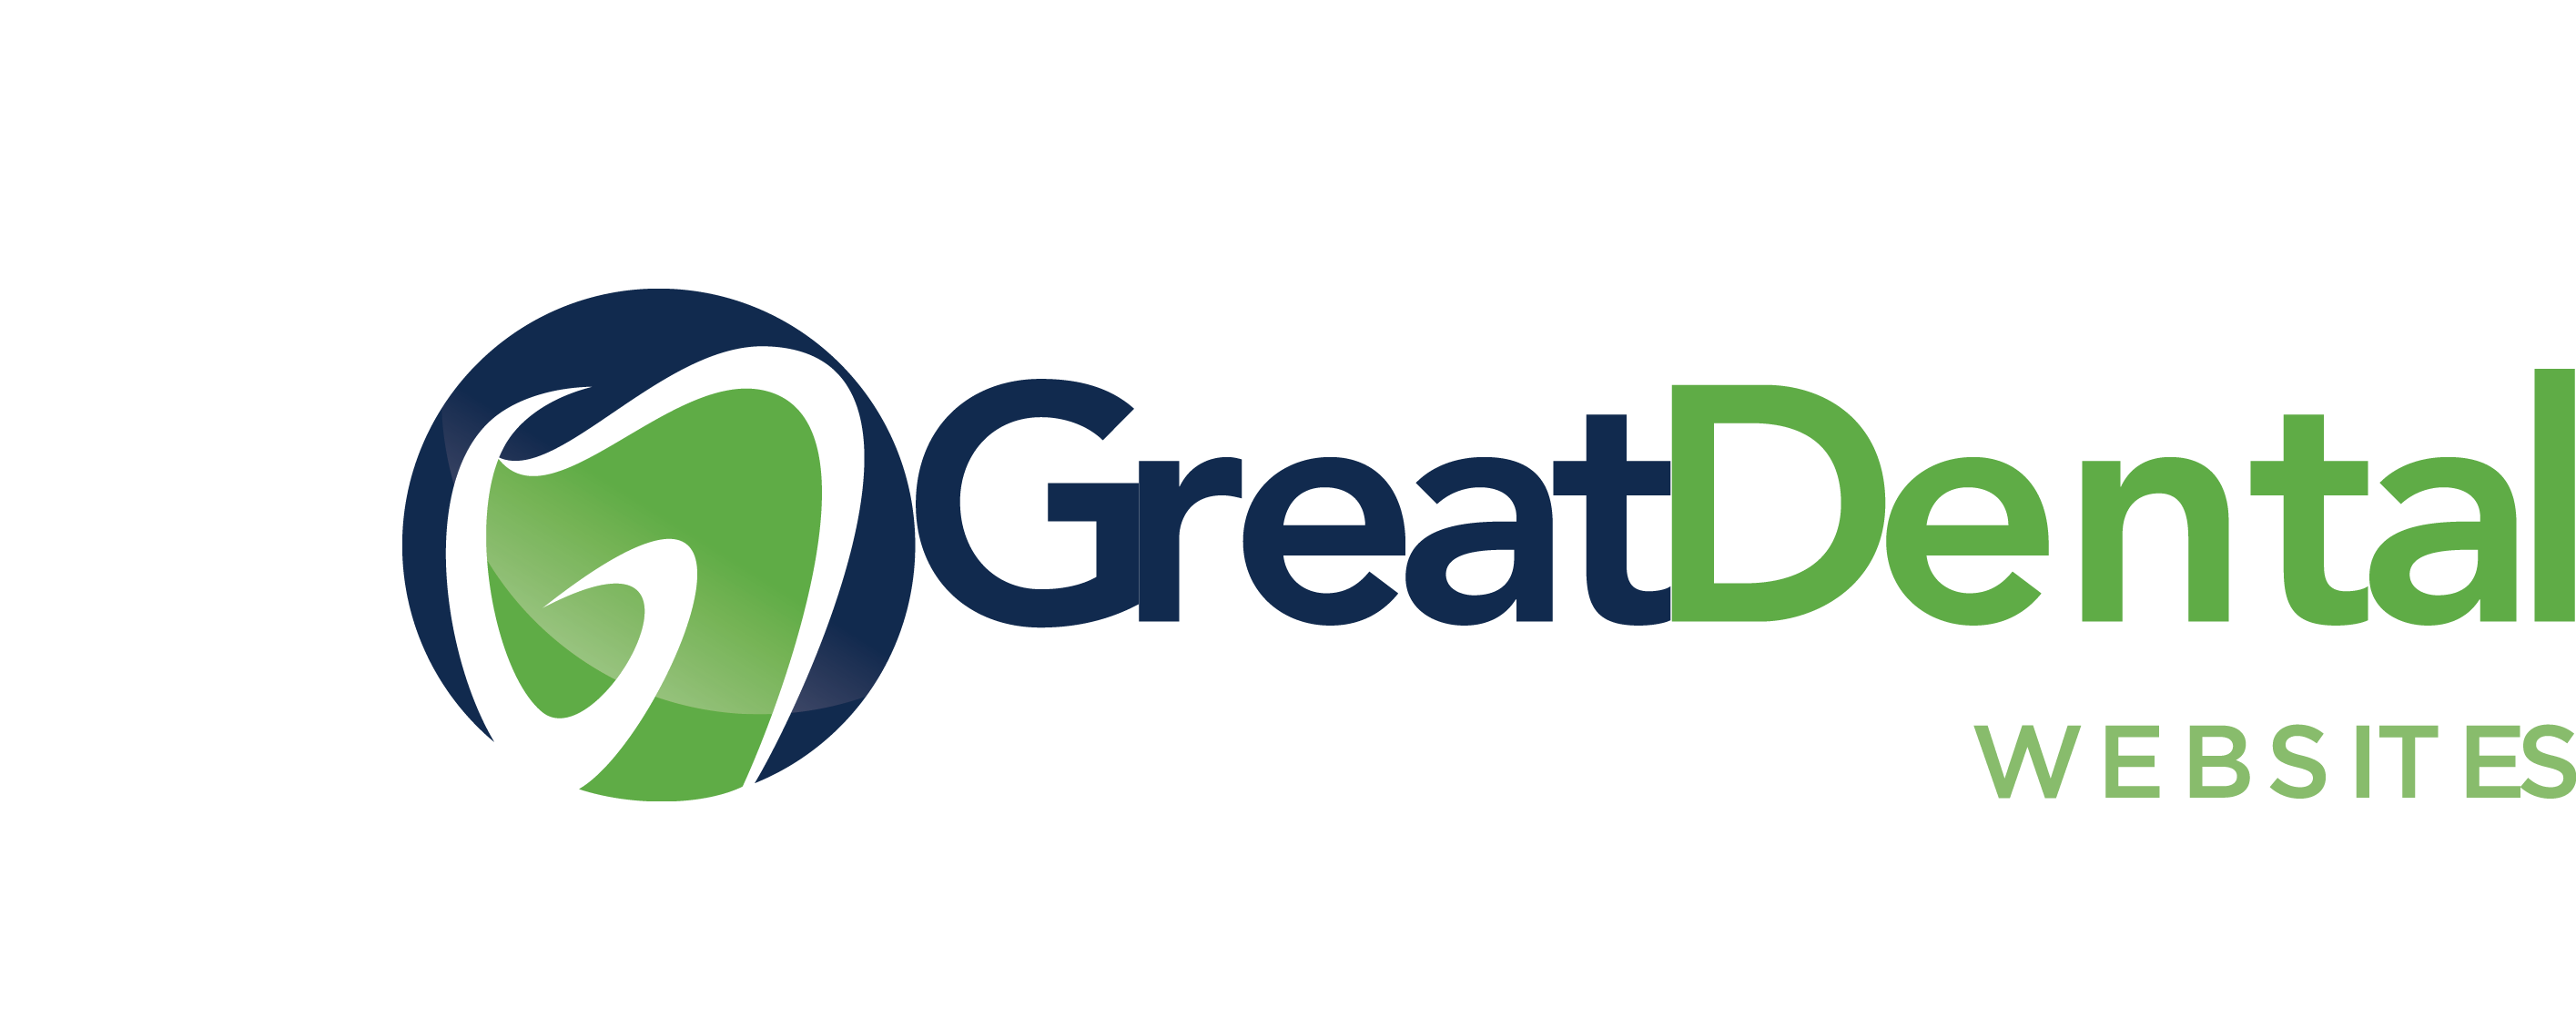 Great Dental Websites Logo